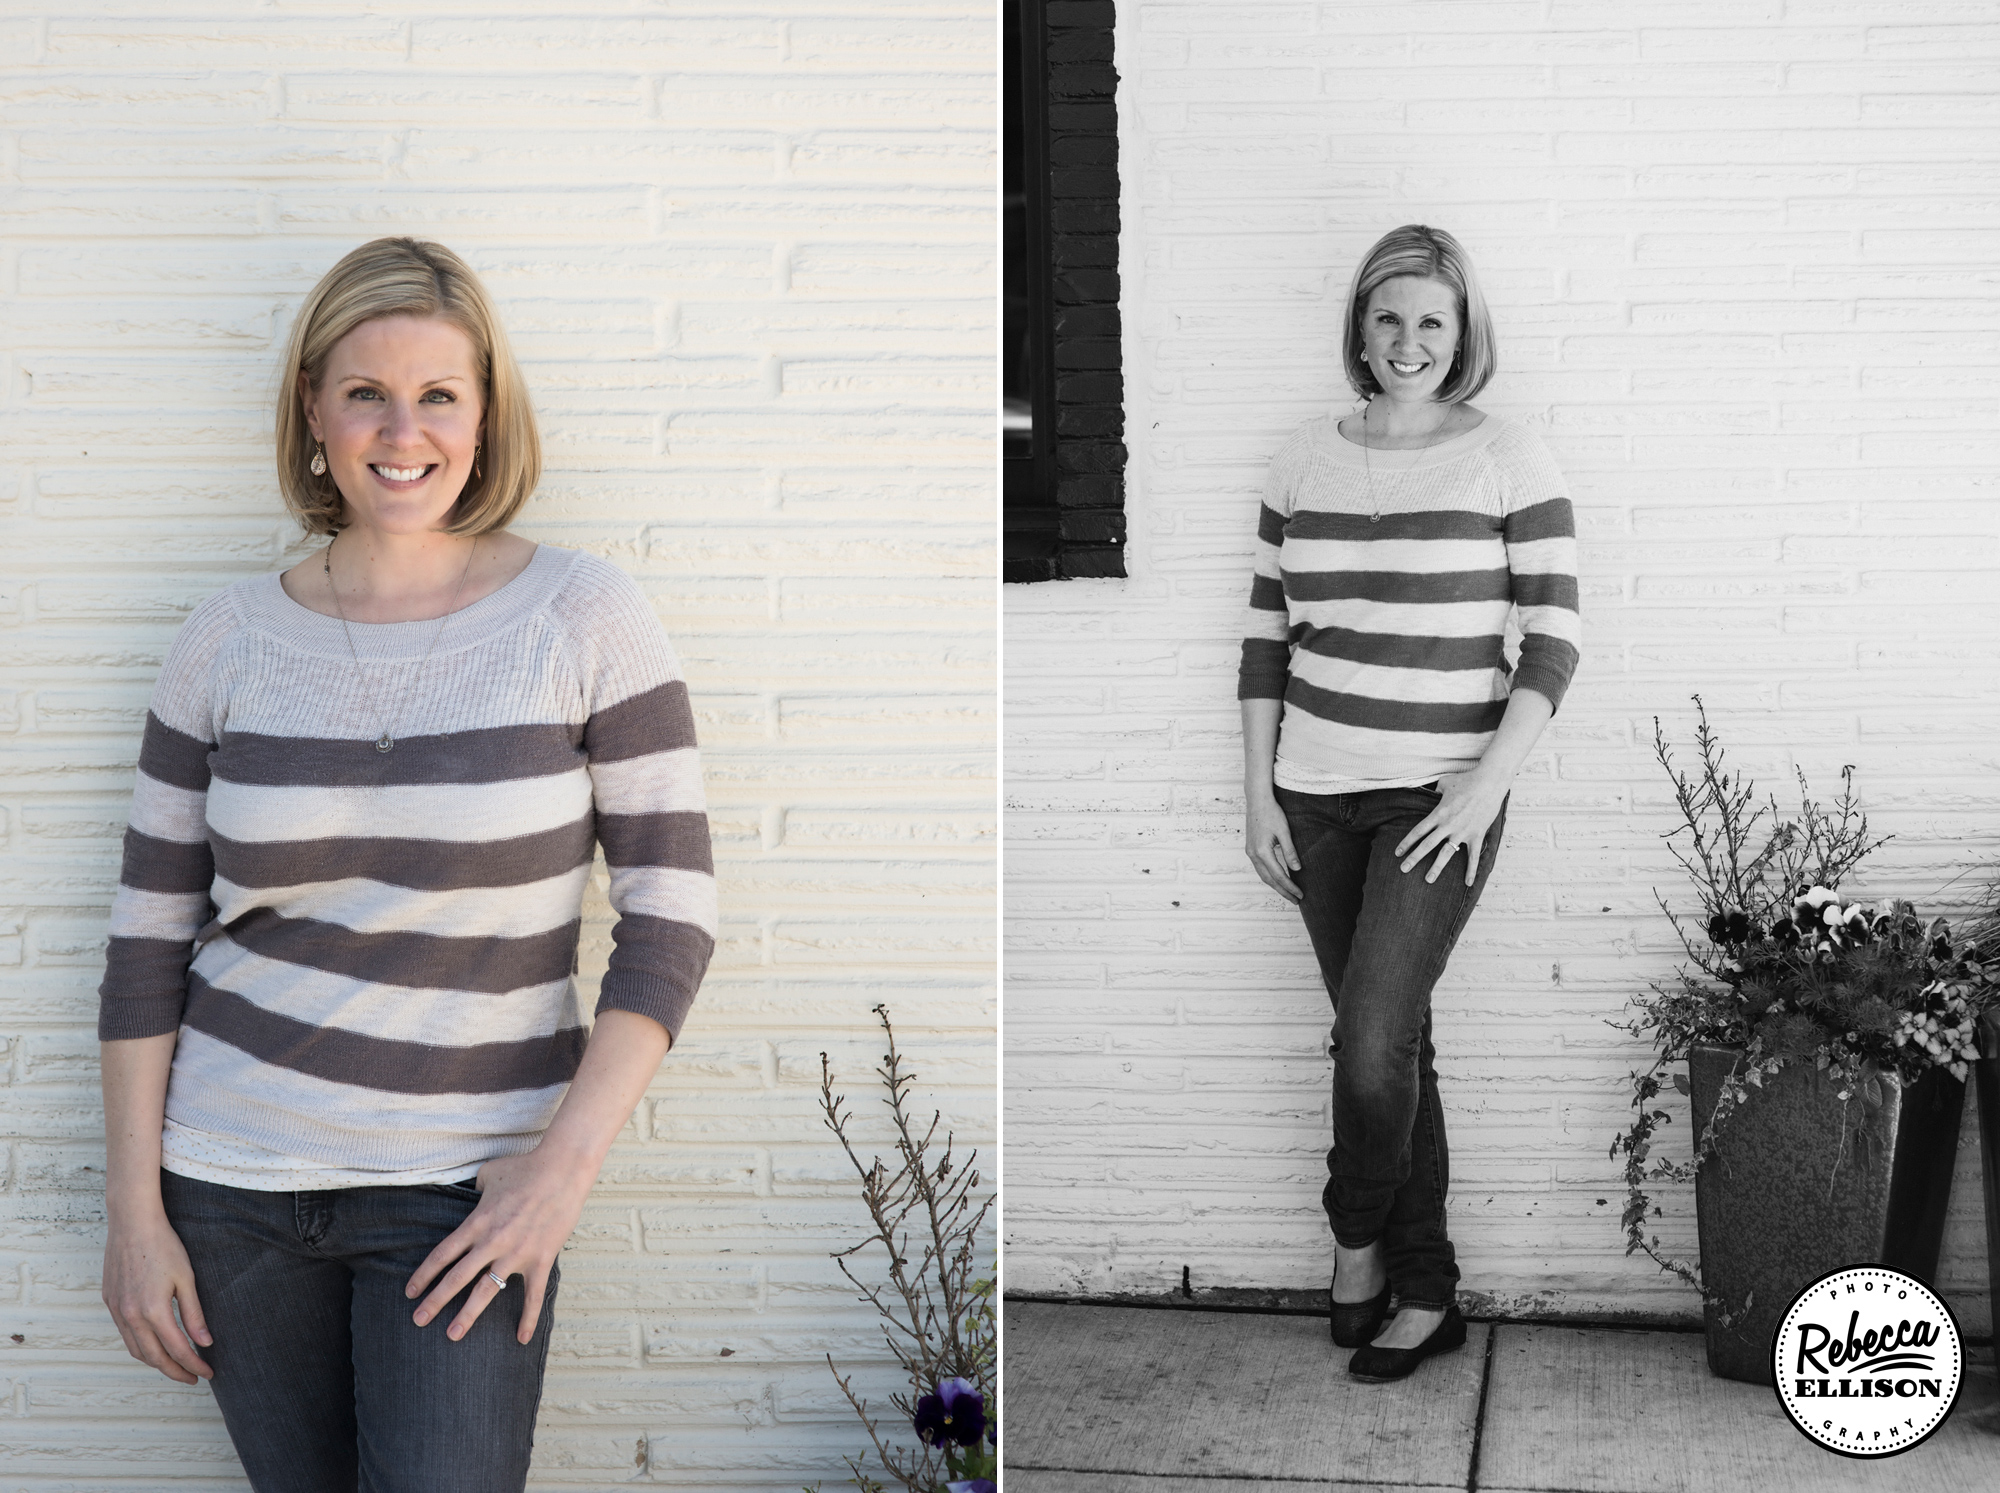 Professional Portraits featuring casual attire and a white brick wall photographed by Seattle headshot photographer Rebecca Ellison